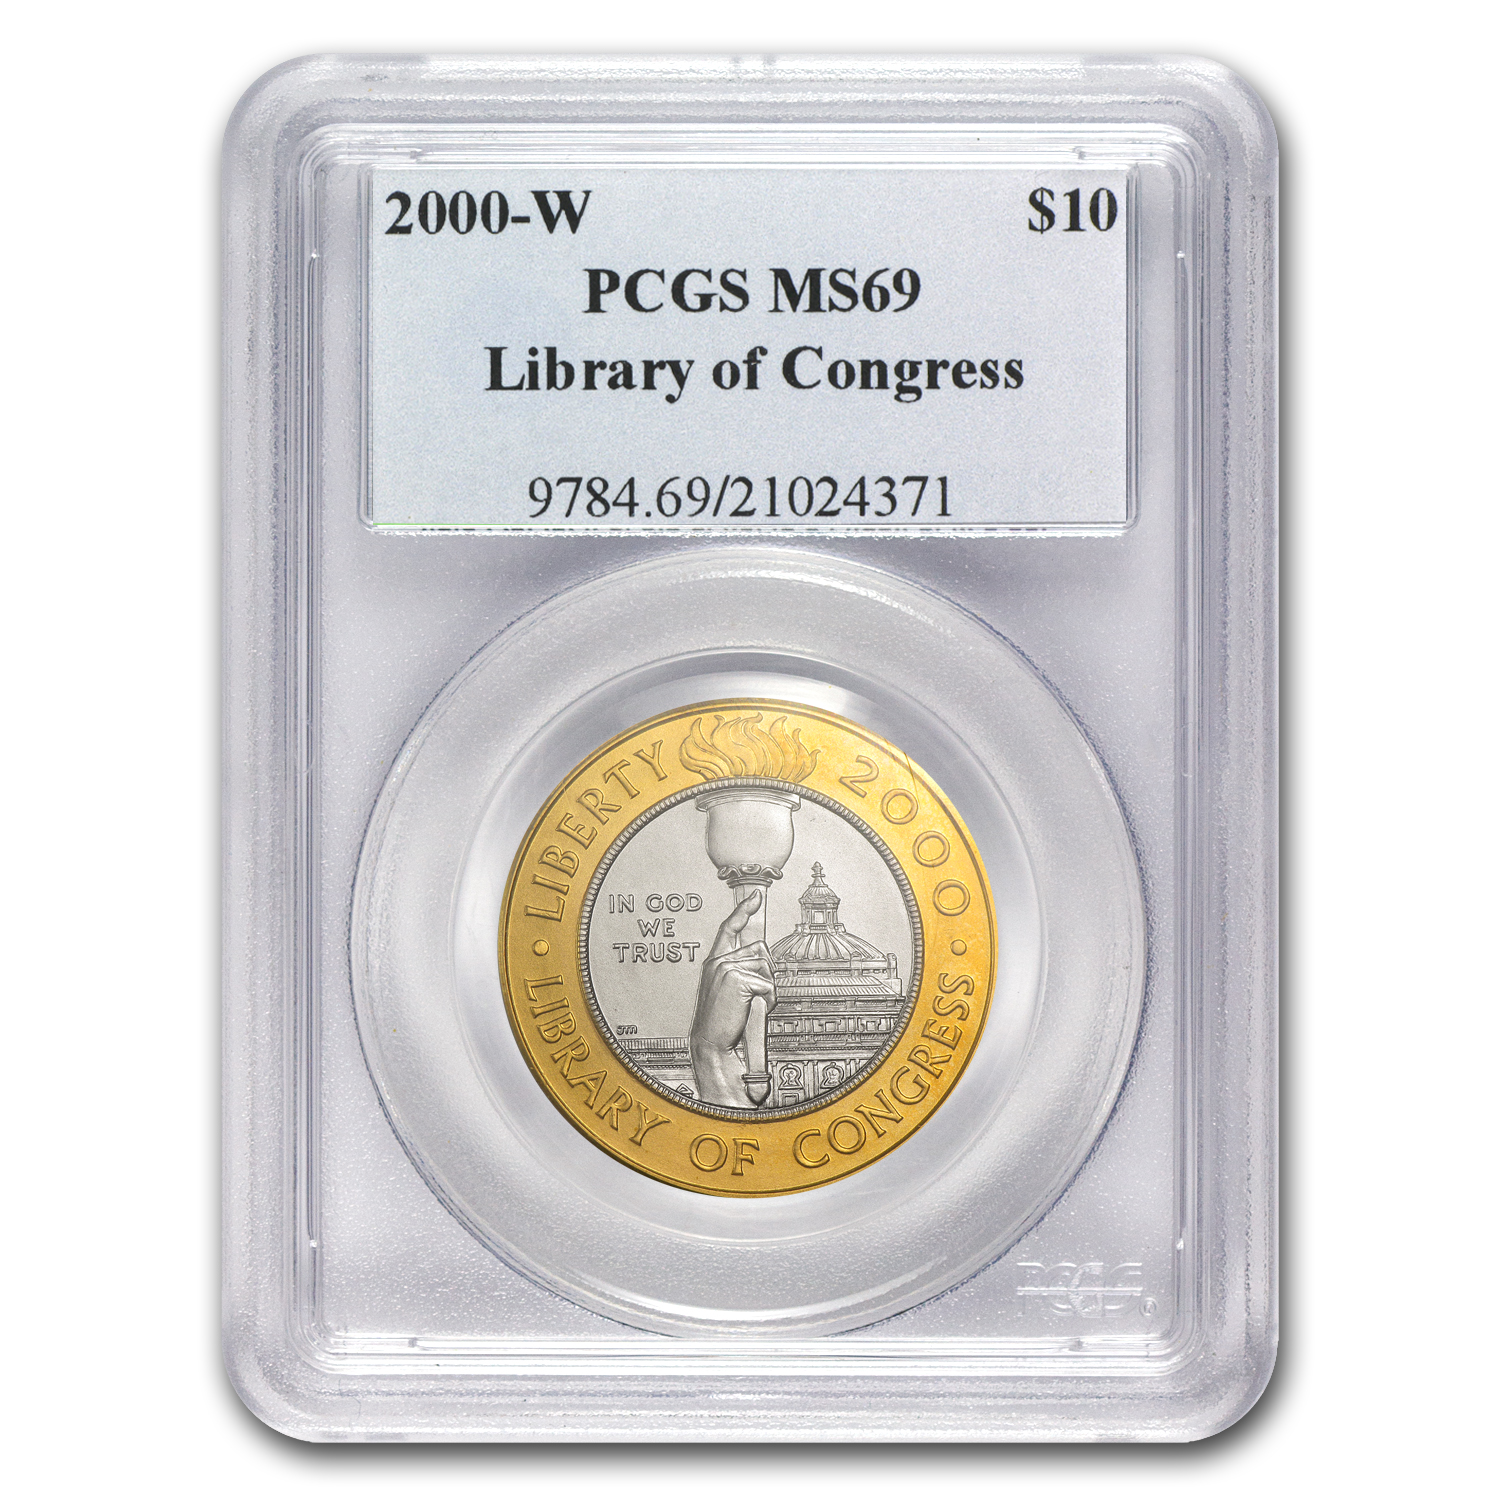 2000-W Library of Congress - $10 Gold/Platinum Comm - MS-69 PCGS